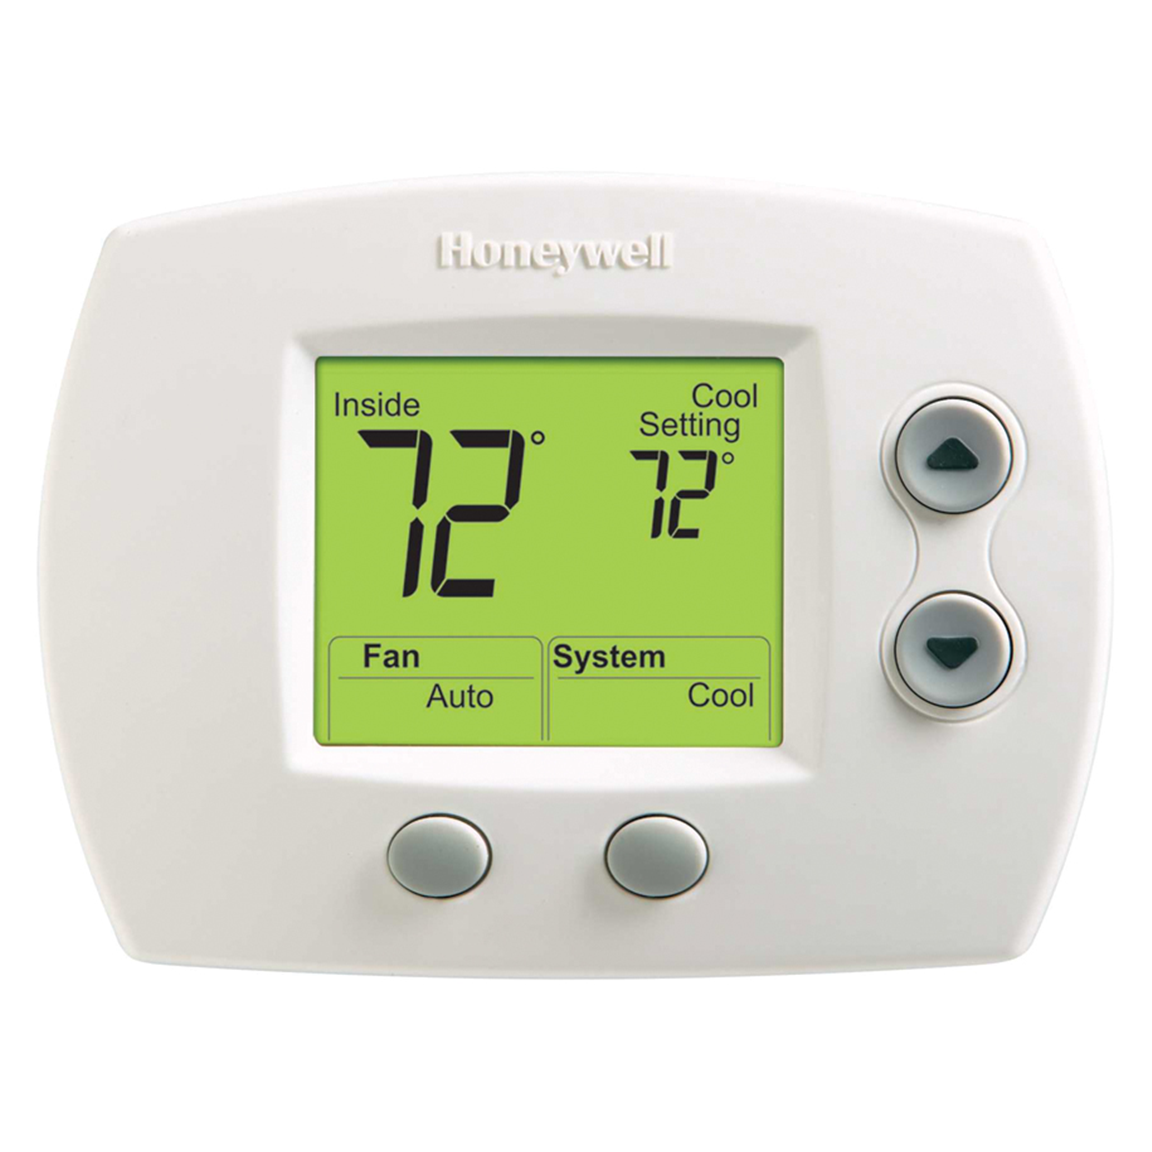 Honeywell Thermometer Instructions User Guide Manual That Easy To Thermostat Troubleshooting 5000 Instruction Enthusiast Wiring Rh Rasalibre Co Programmable Thermostats